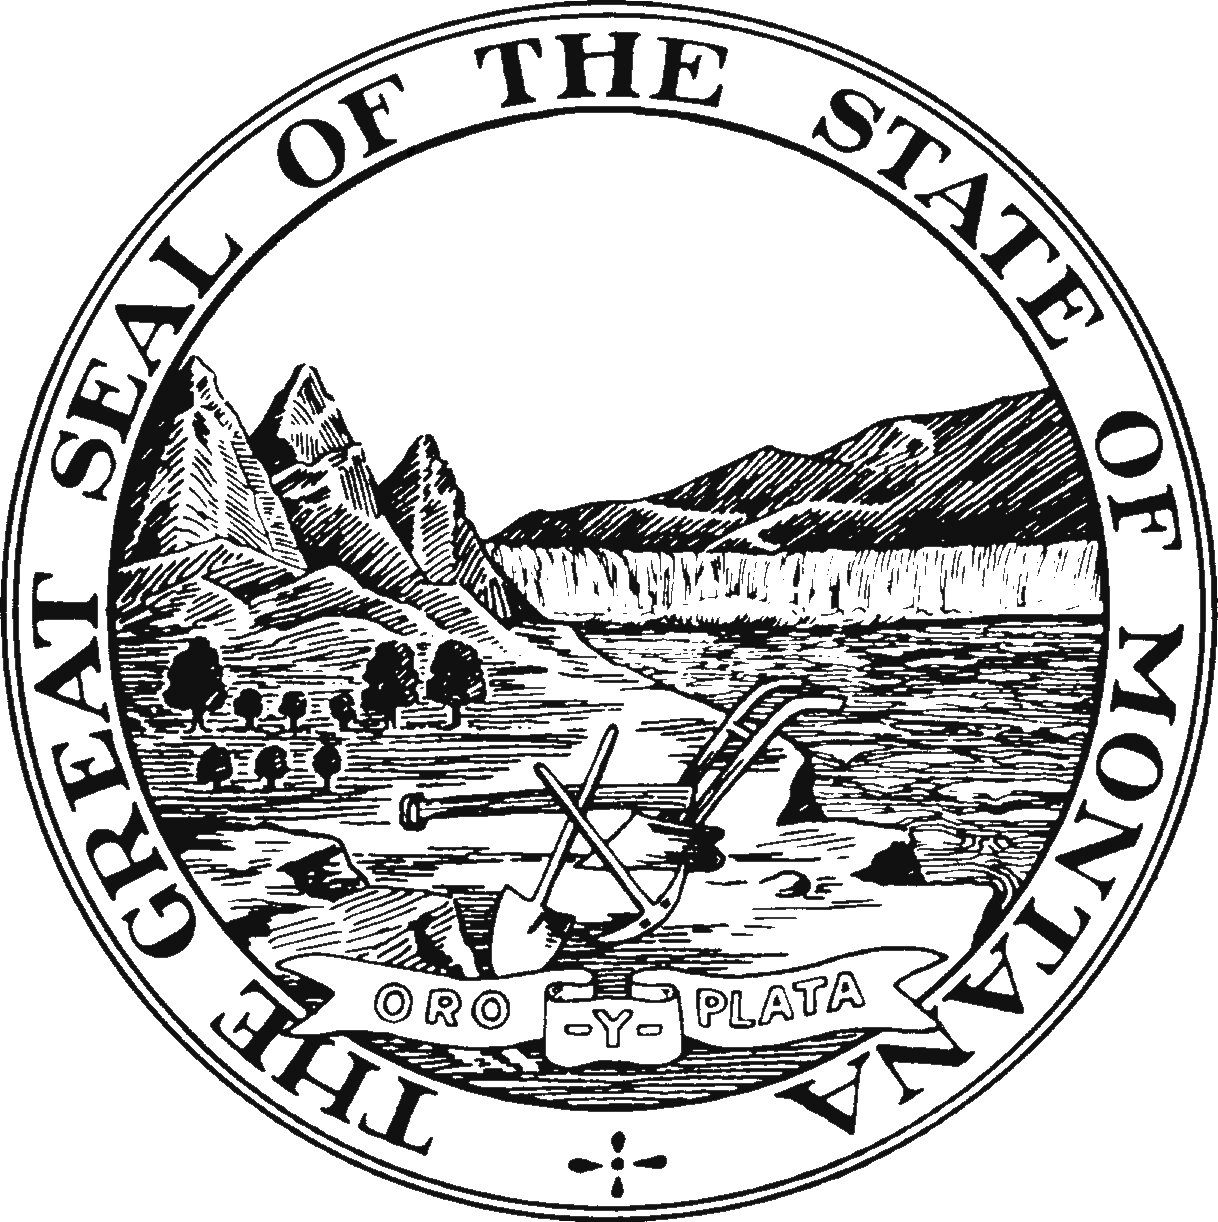 State Seal Of Montana Coloring Pages Flag Coloring Pages Printable Coloring Book